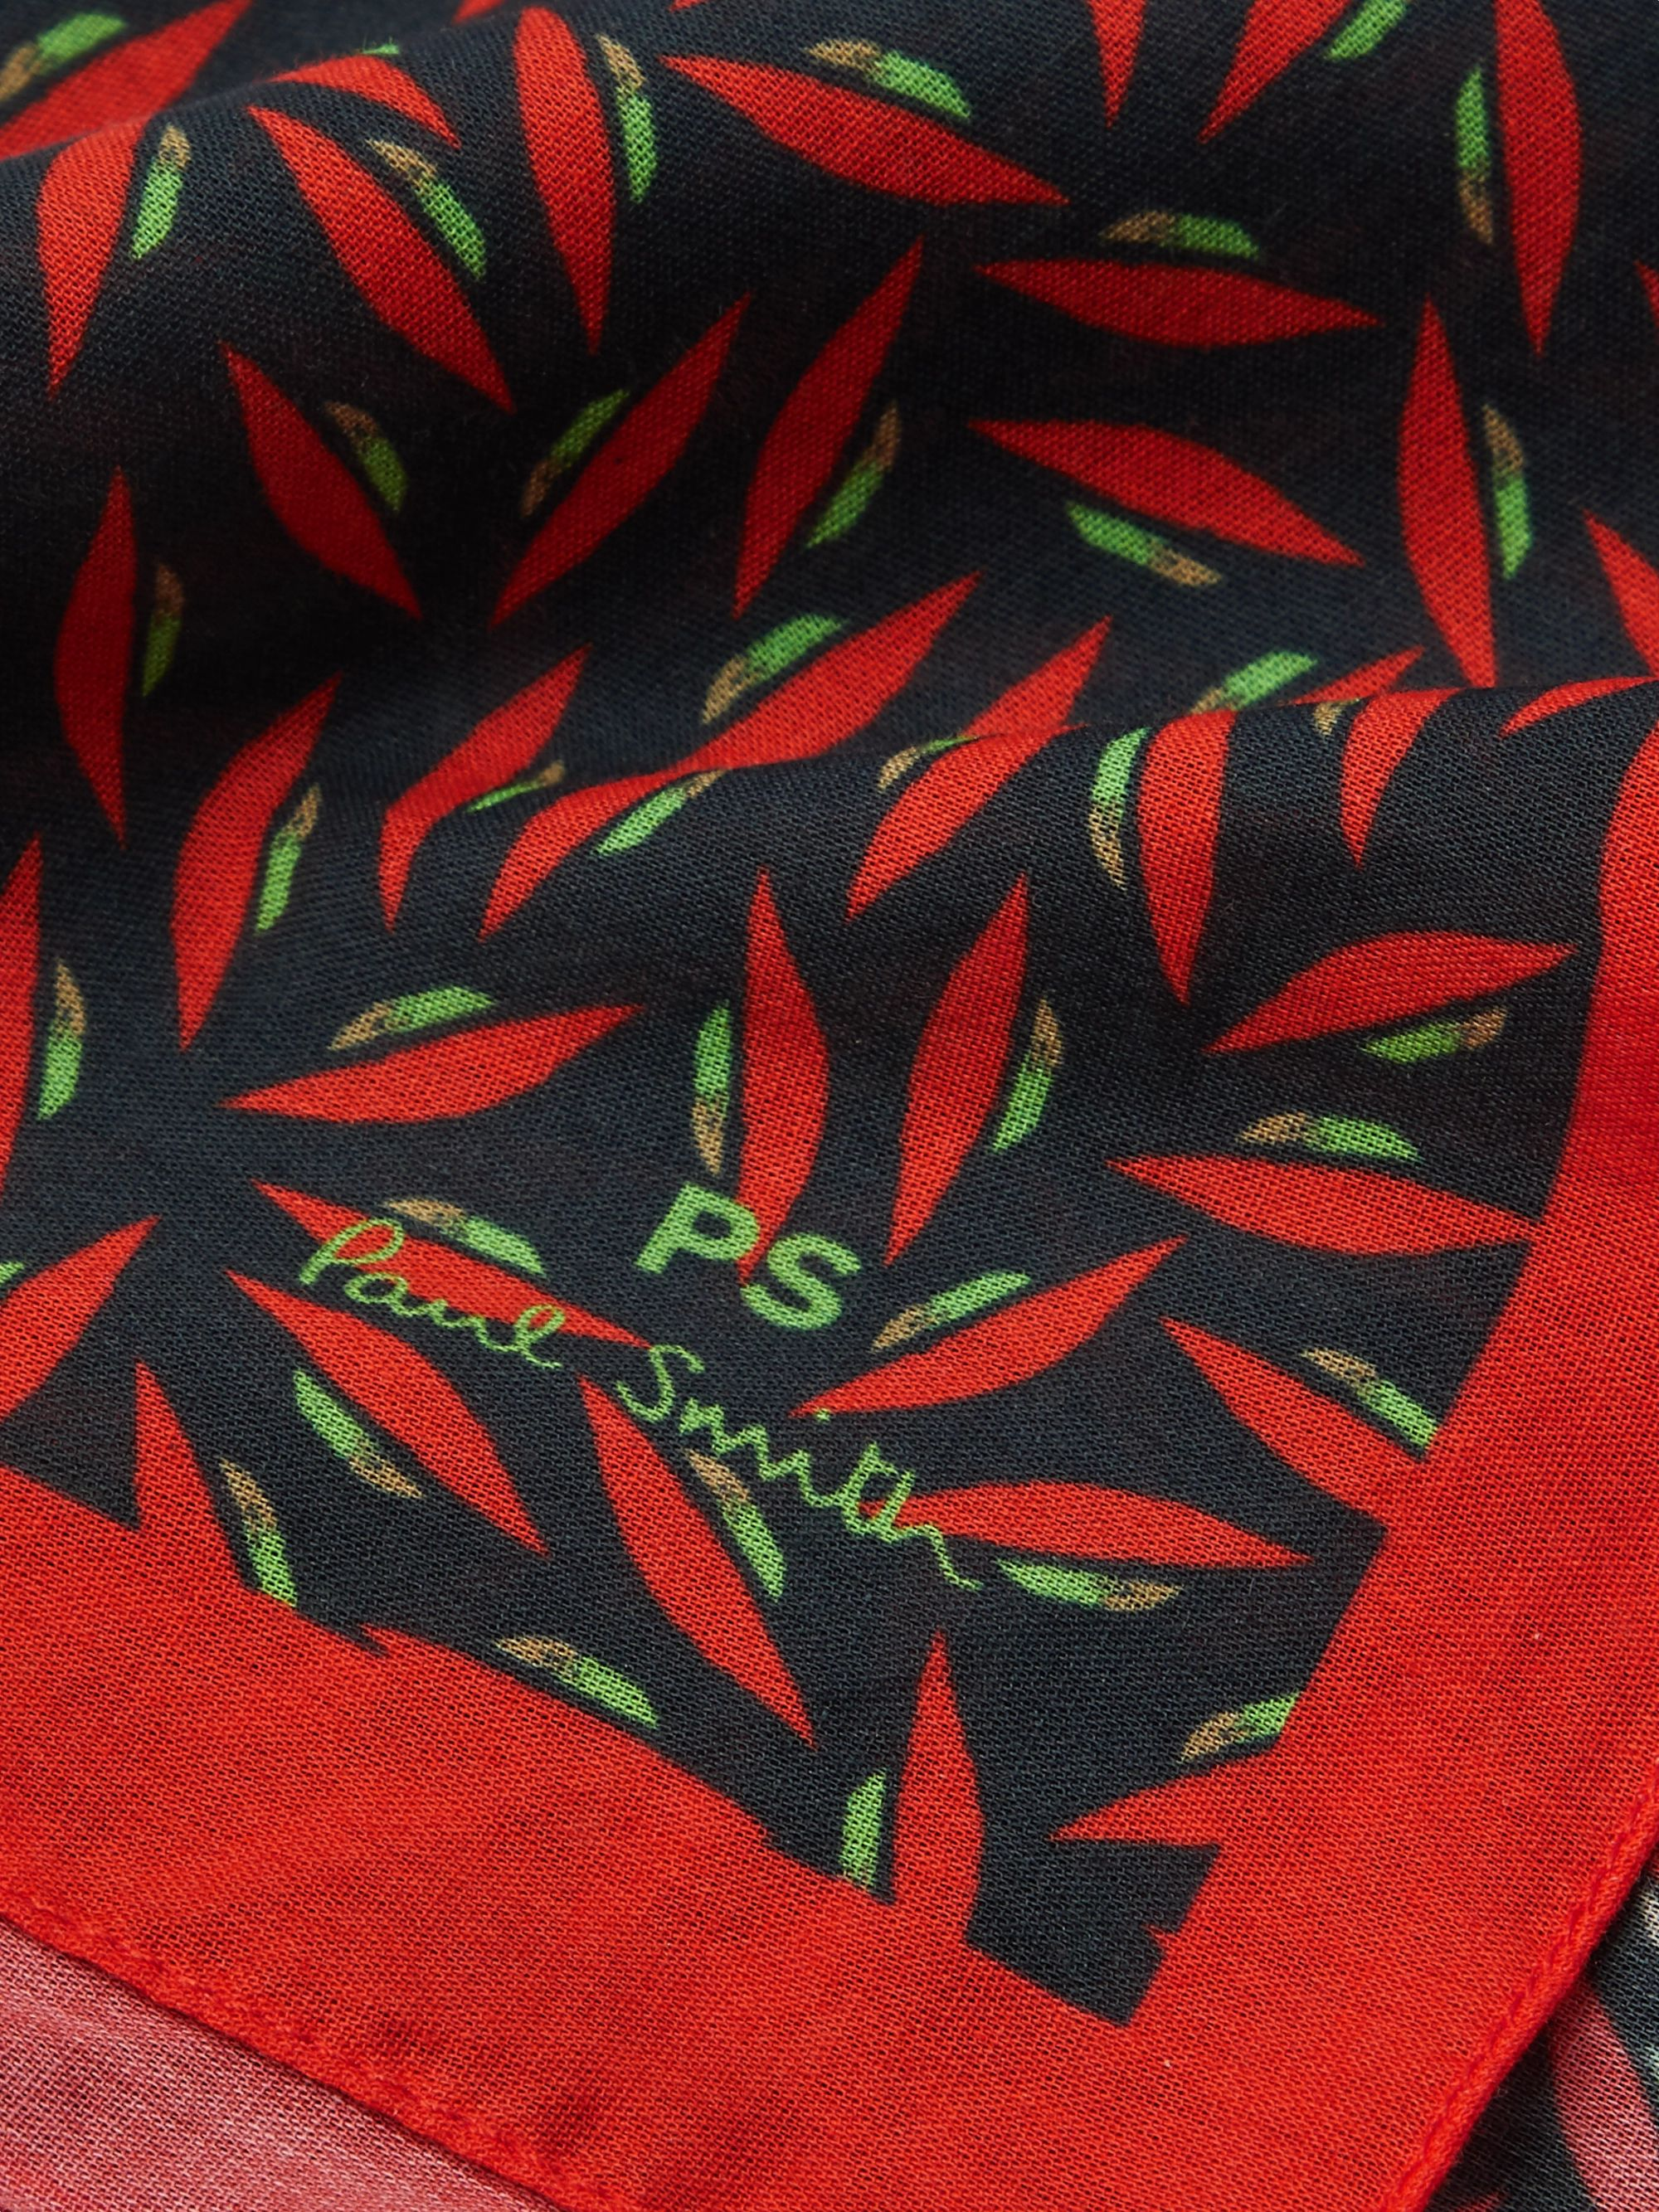 Paul Smith Printed Cotton Pocket Square